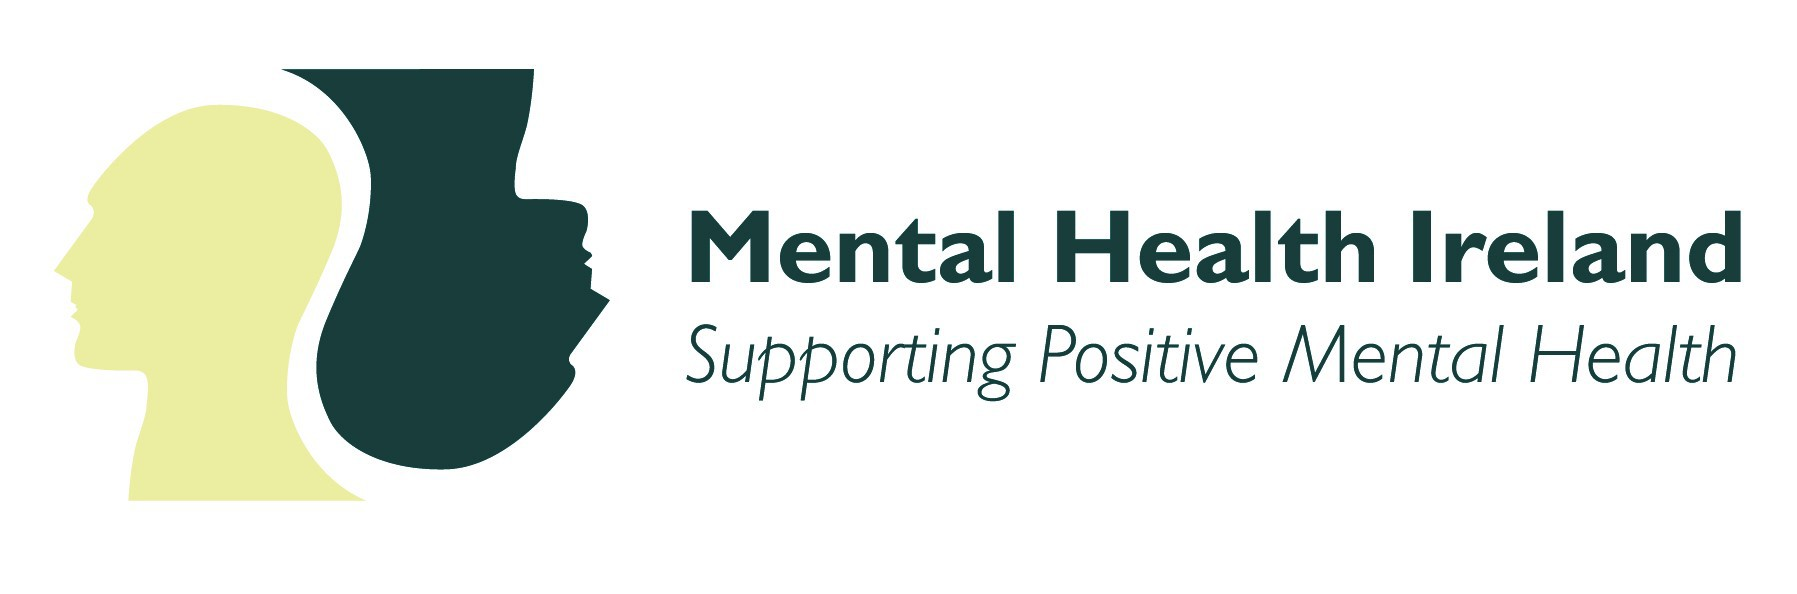 Mental Health Ireland - South Eastern Region